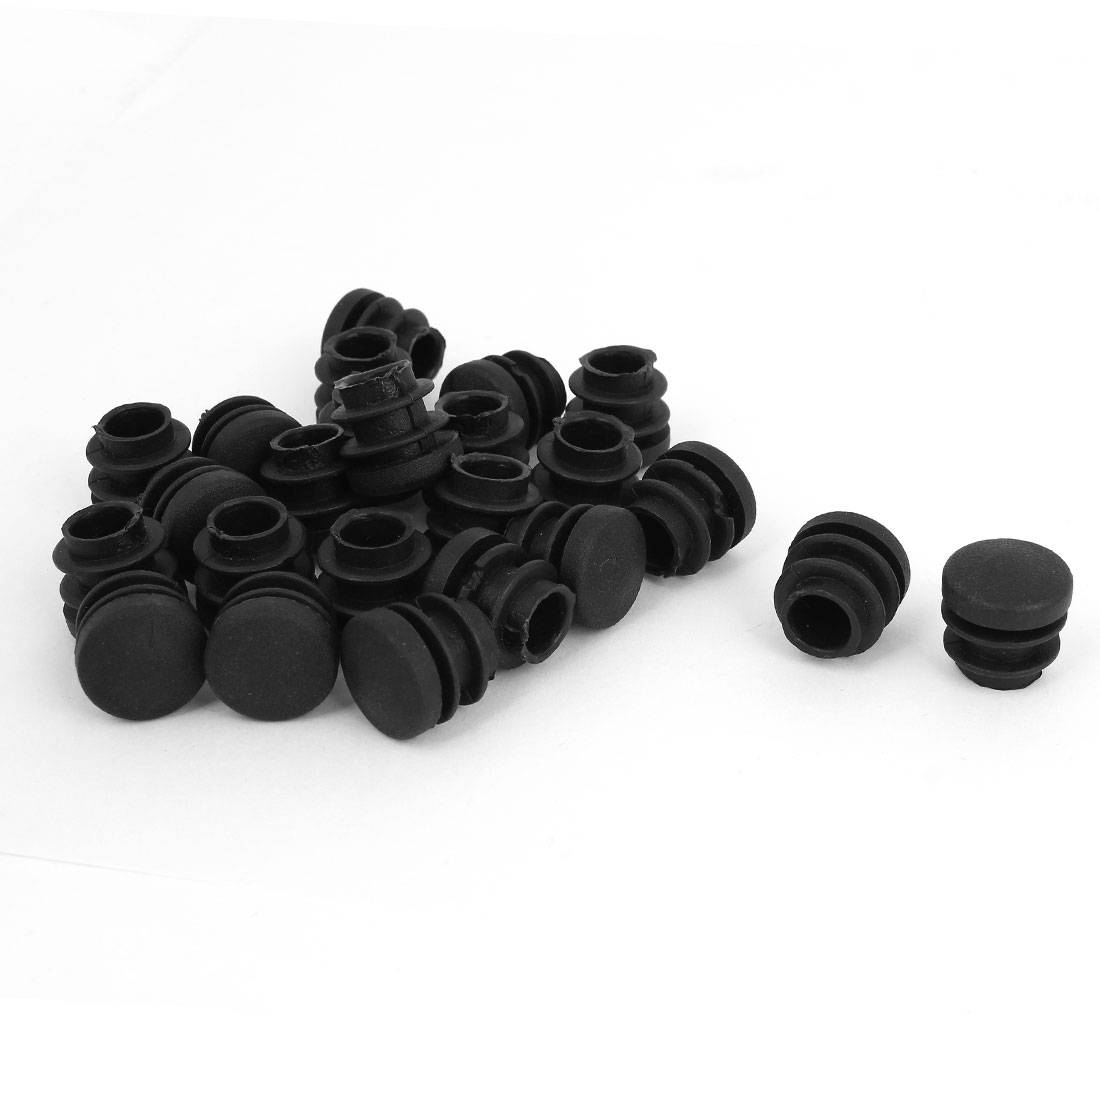 24 Pcs Black Plastic Round 16mm Pipe End Blanking Caps Bung Tube Tubing Insert Plugs